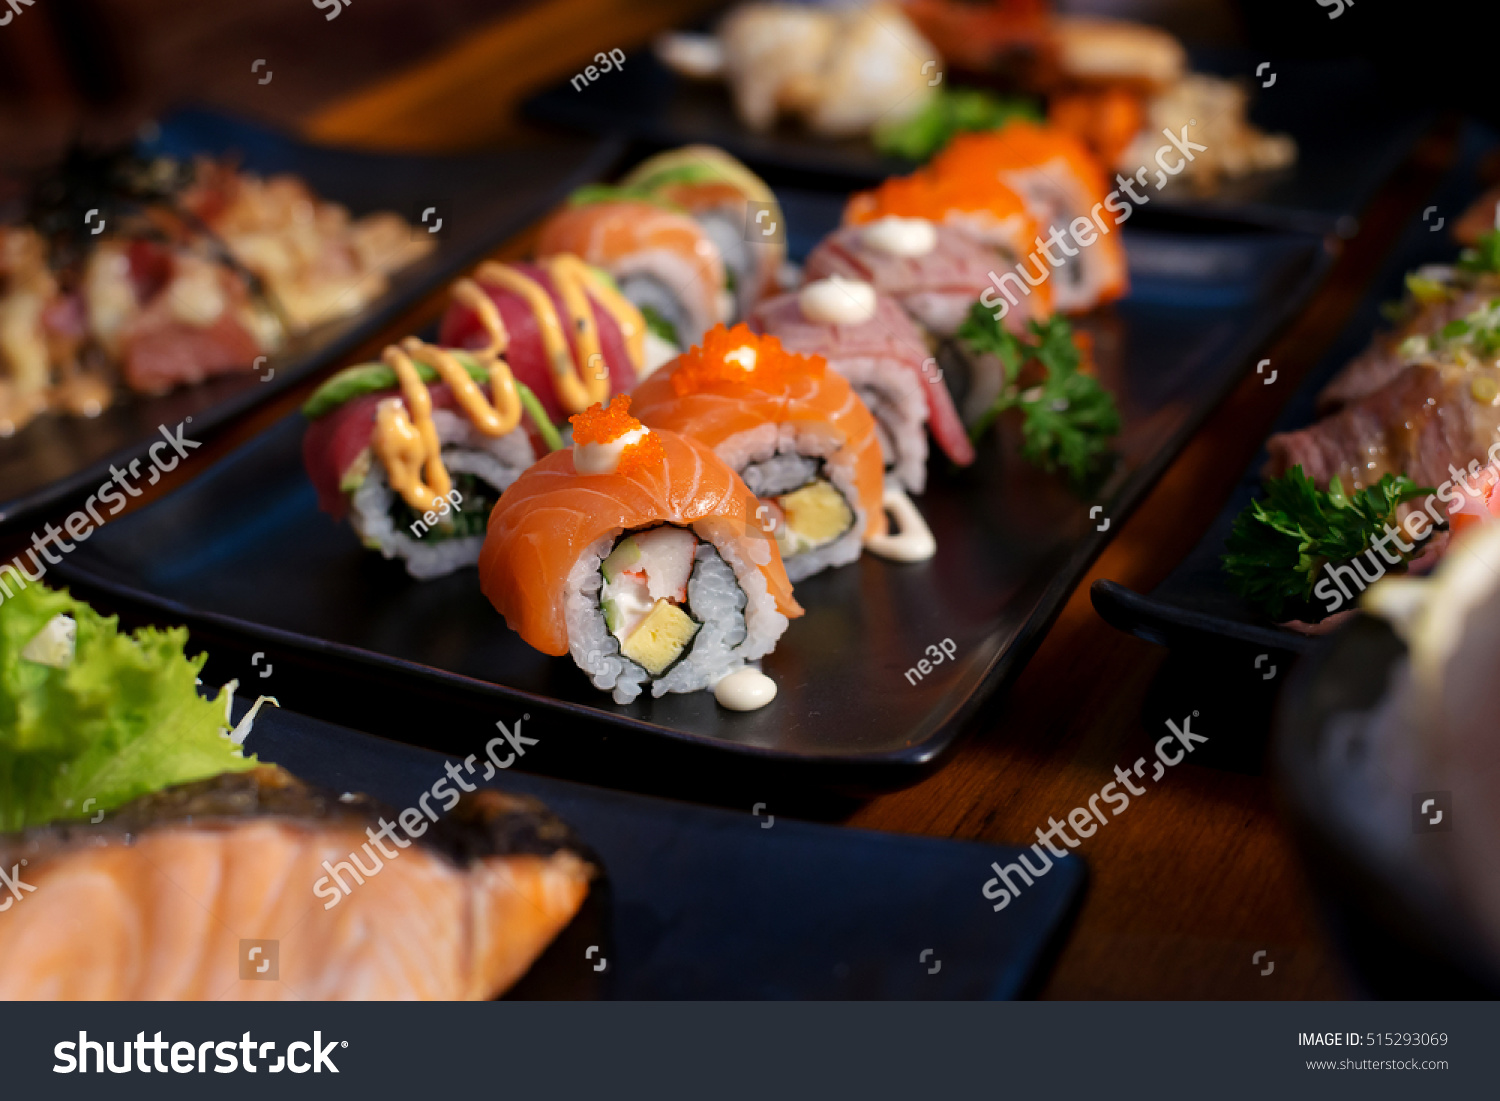 favorite food essay sushi Sushi is one of my favorite foods depending on where you get it, it's usually  made fresh with natural ingredients plus, fish is a great source of.